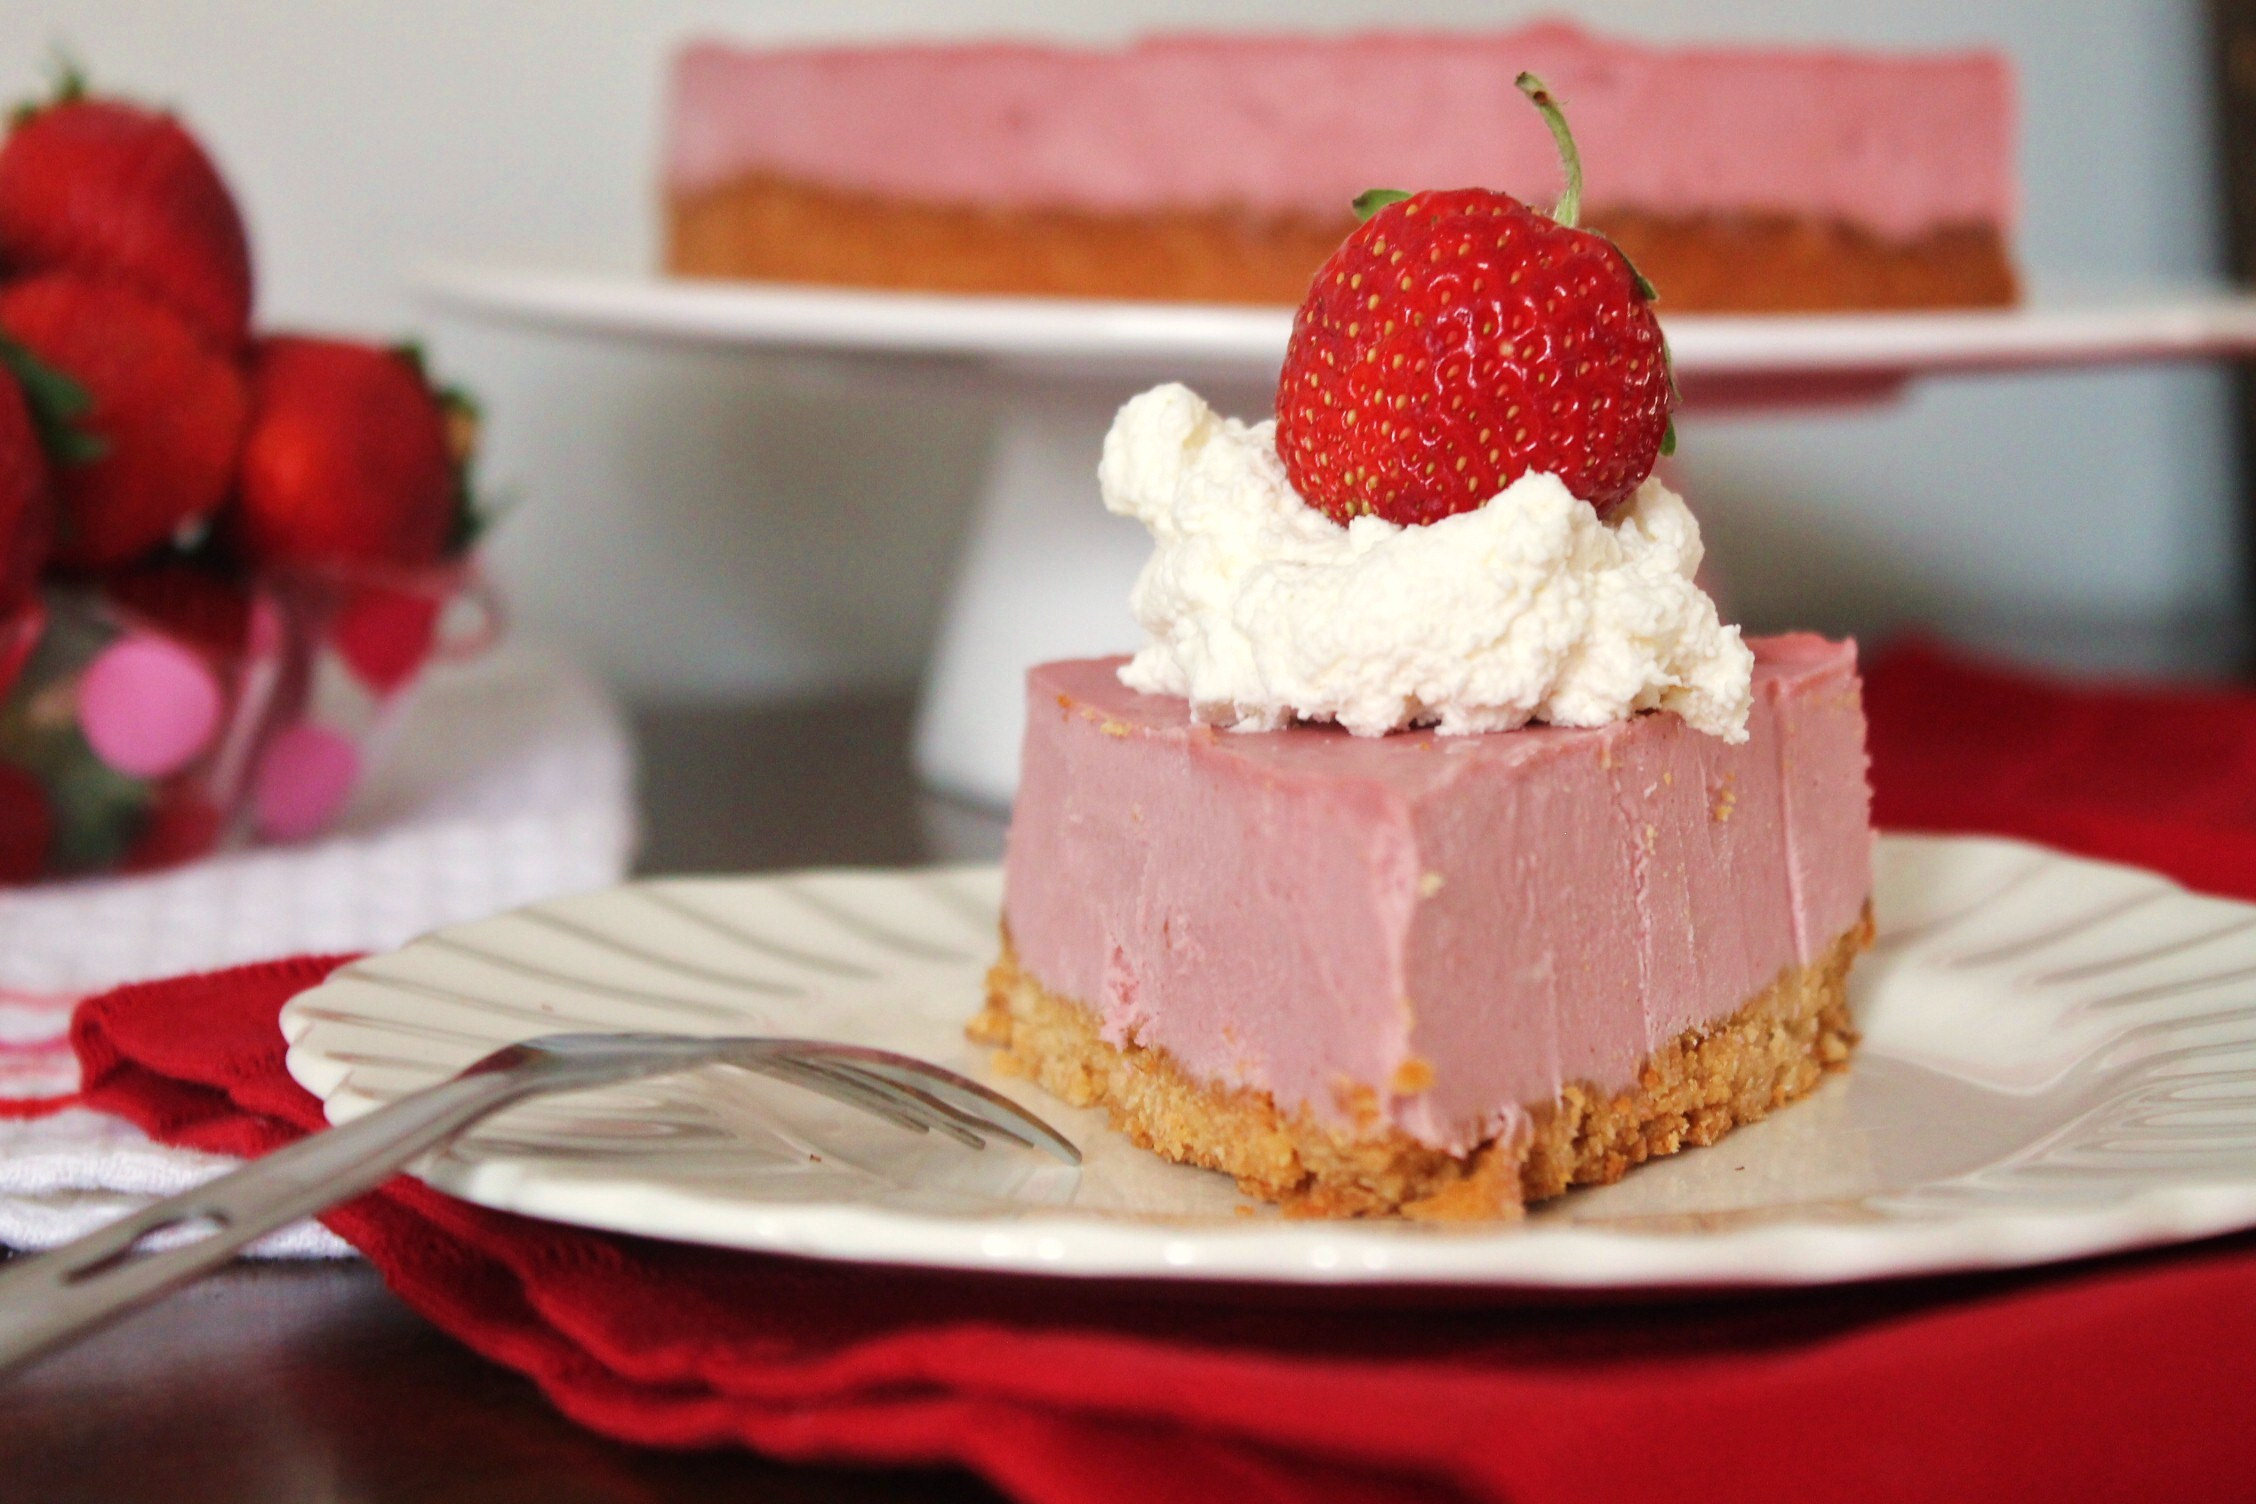 No Bake Strawberry Cheesecake -gluten free, dairy free, paleo!